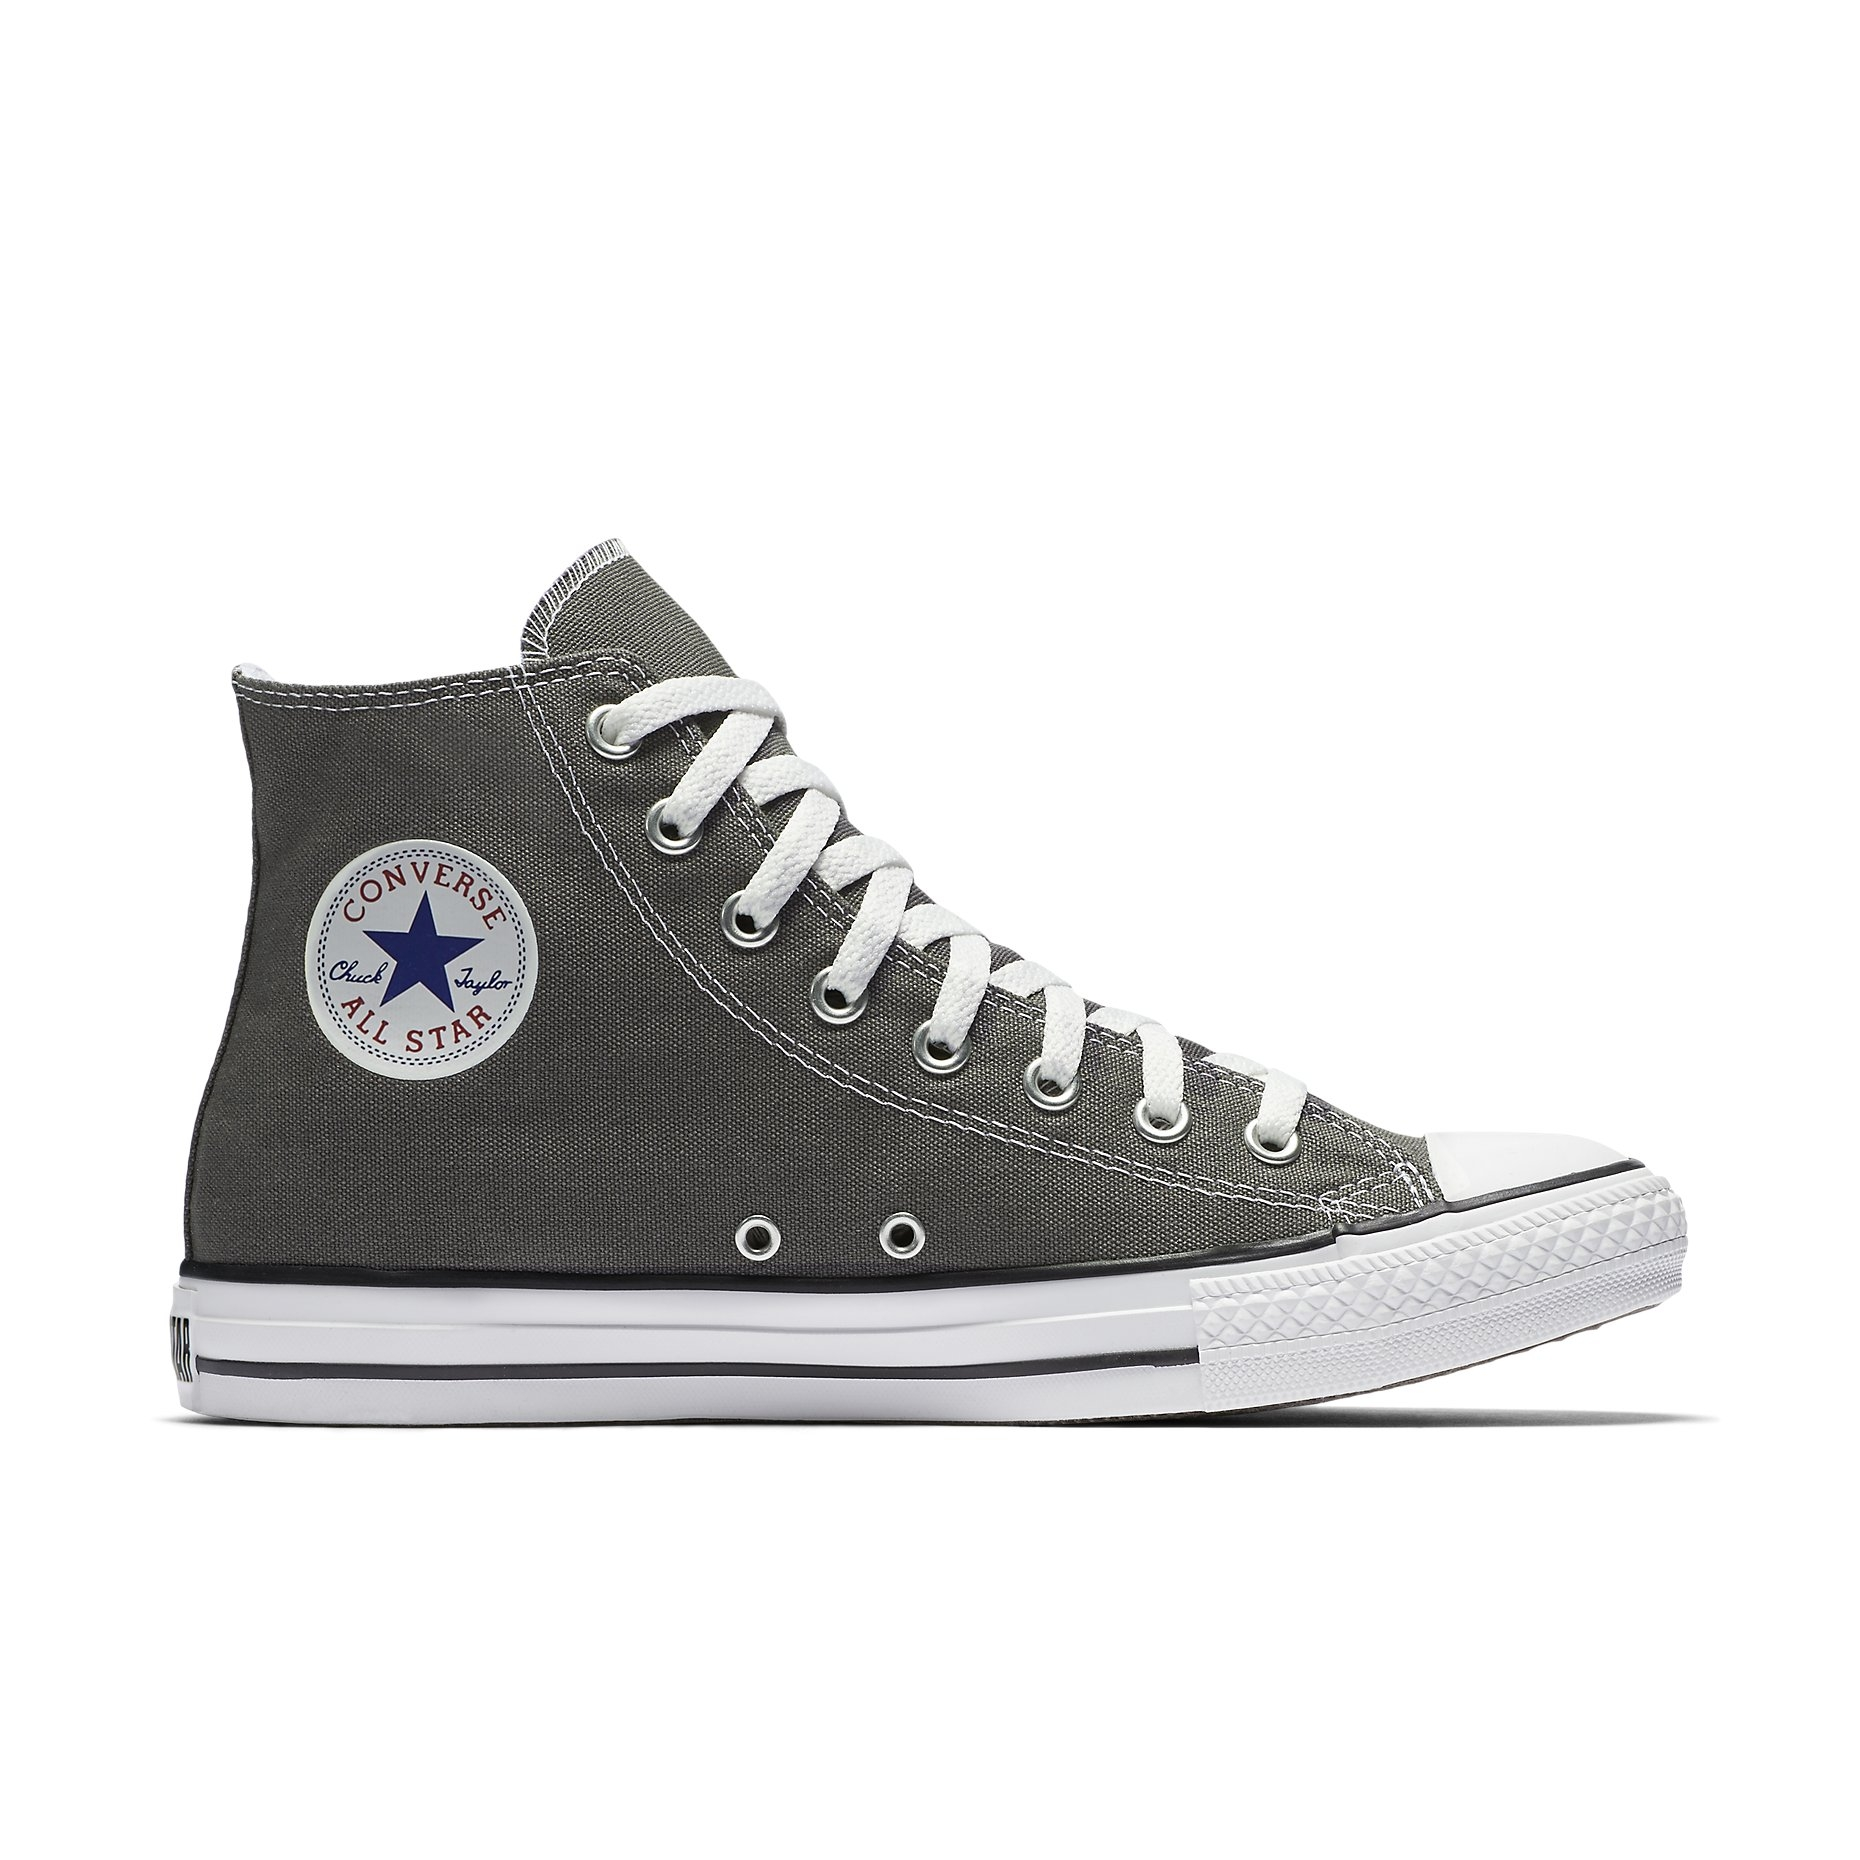 New-Converse-Chuck-Taylor-All-Star-High-Top-Sneakers-Original-Canvas-Shoes-NIB